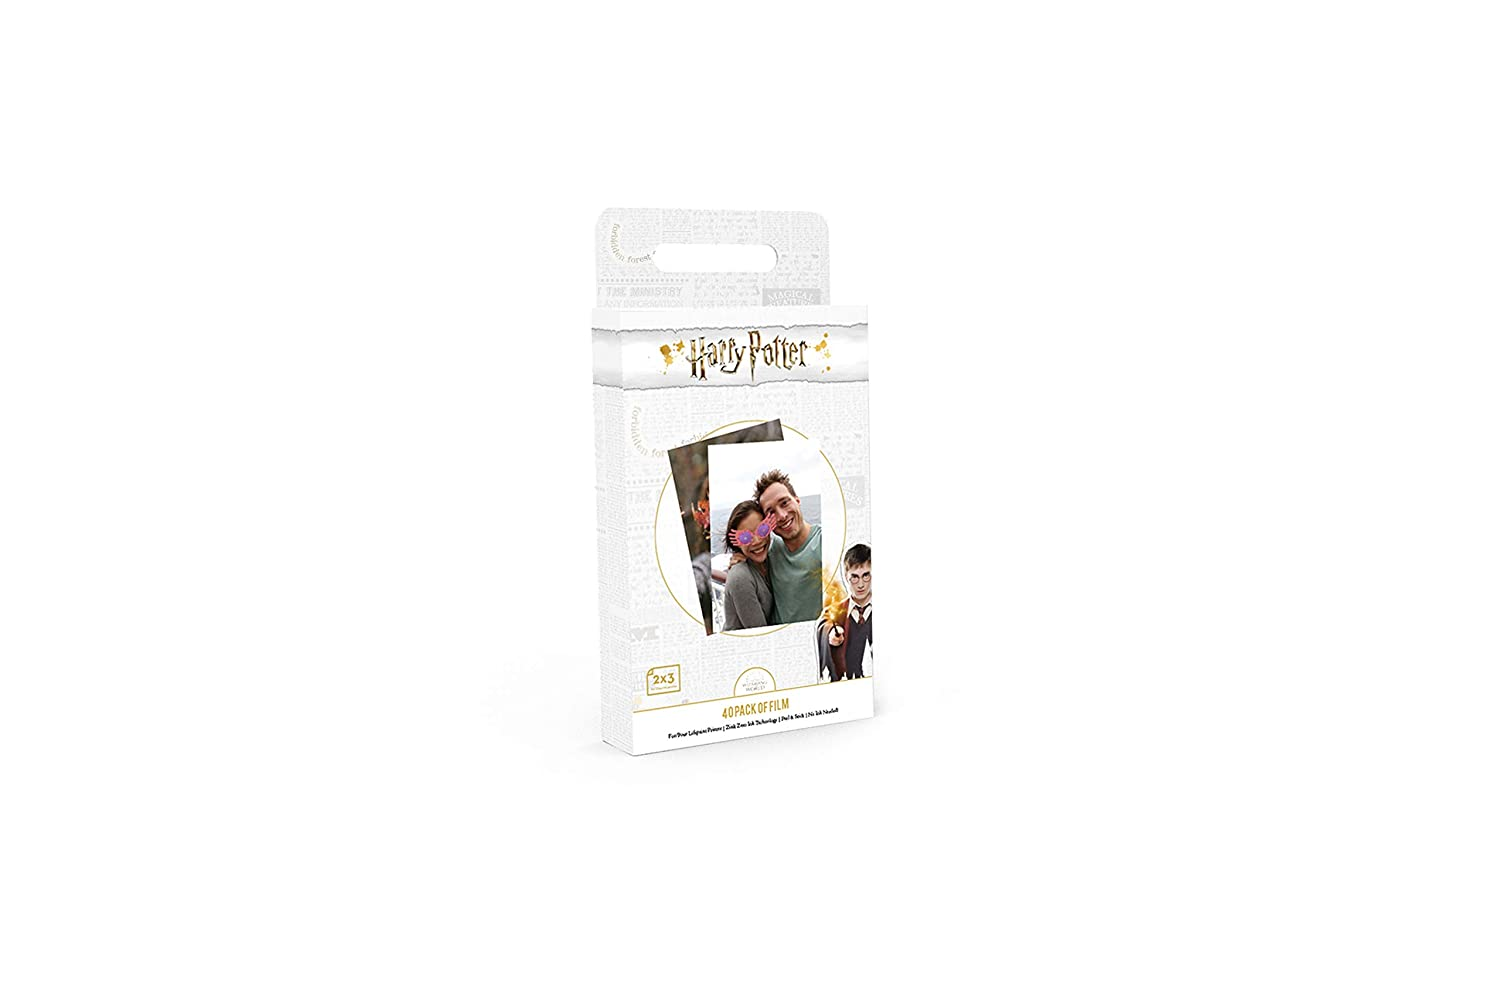 Harry Potter Magic Photo Video Printer Sticky Backed Film – 40 Pack LifePrint PH50